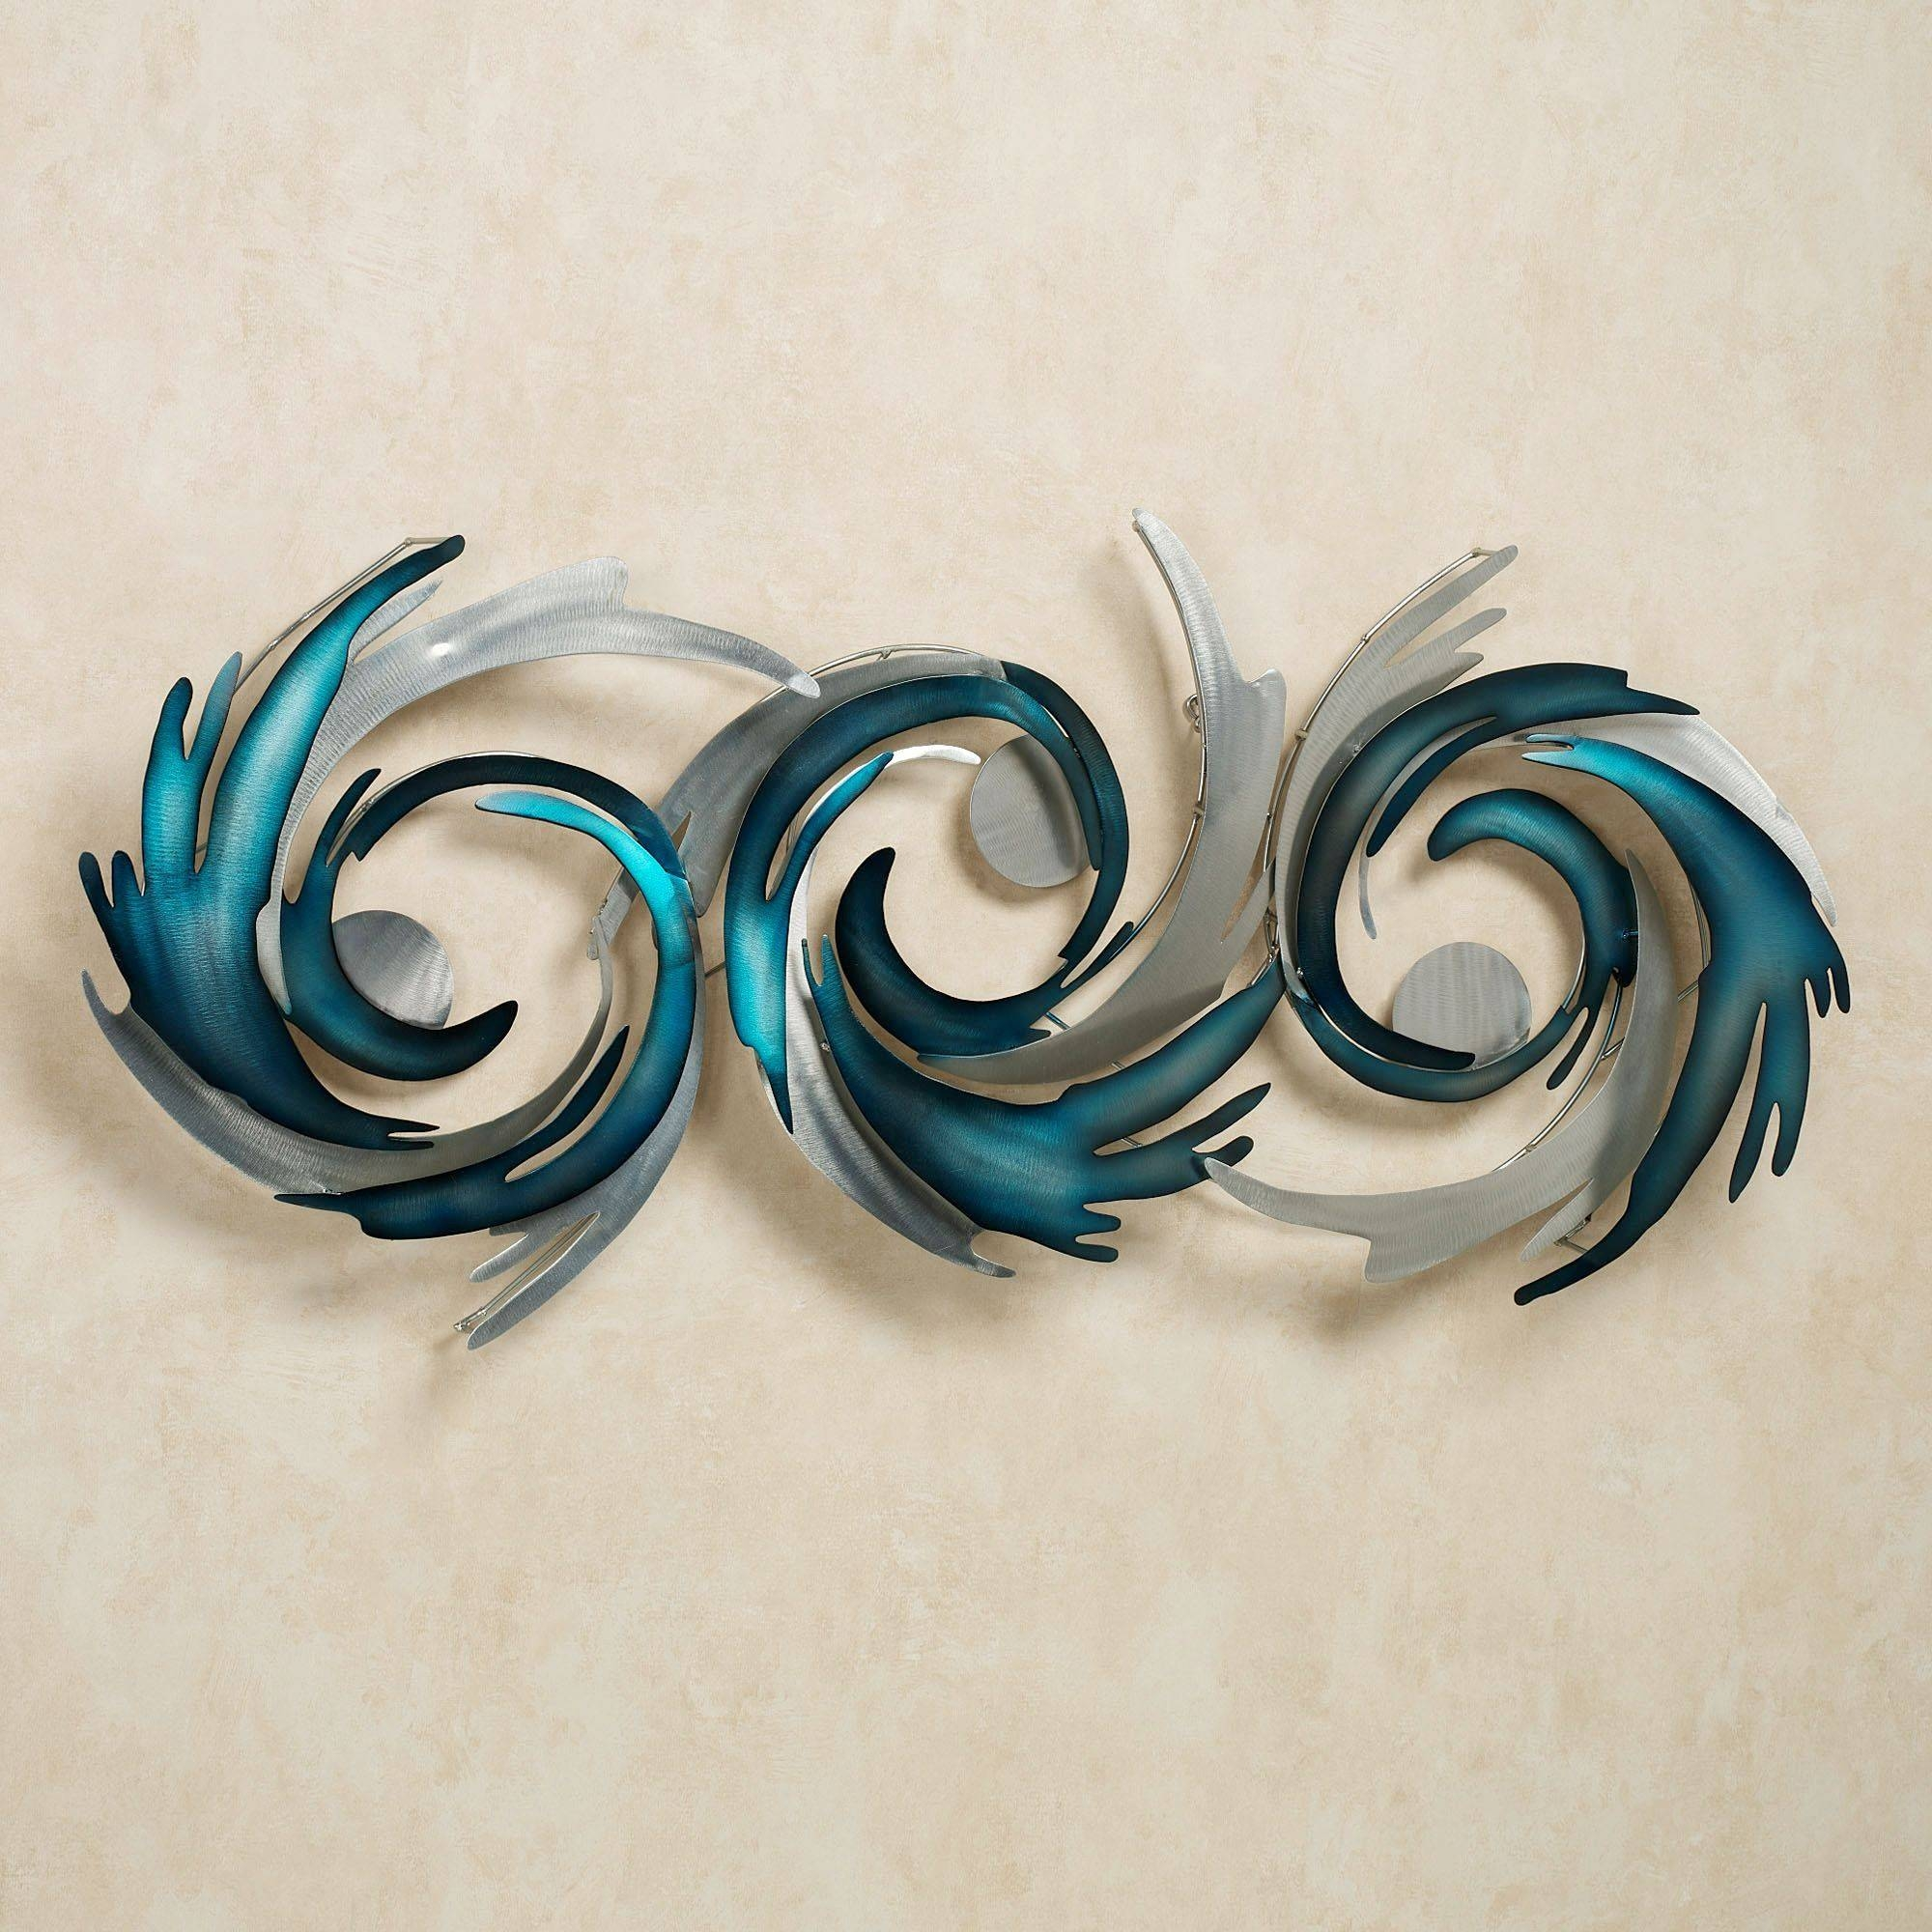 Contemporary Metal Wall Art Sculptures | Touch Of Class In Most Popular Turquoise Metal Wall Art (View 4 of 20)